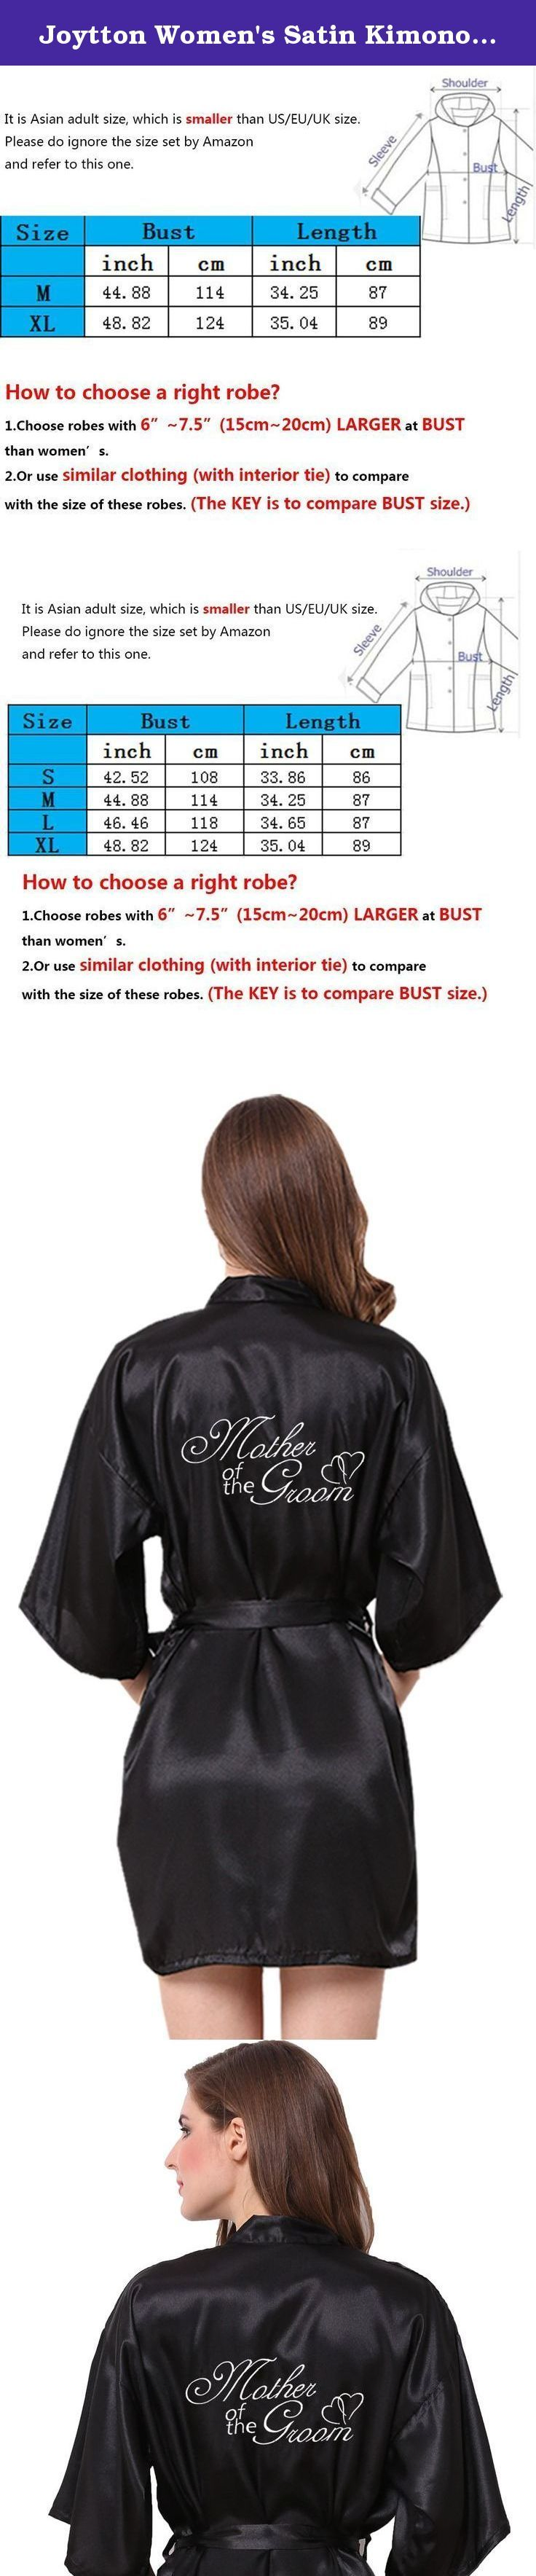 """Joytton Women's Satin Kimono Robe with Embroidered Mother of the Groom Black XL. Are You Looking For Wedding Party Robes with Embroid Signatures? These satin robes are beautifully embroidered with """"Mother of the Groom"""" design on back including an exquisite Mother of the Groom's signature and a romantic double-heart graphic,which makes a great gift for Mother of the Groom in the wedding party. Unlike many other bridal party robes with rhinestone graphic on back,easy to fall, this…"""